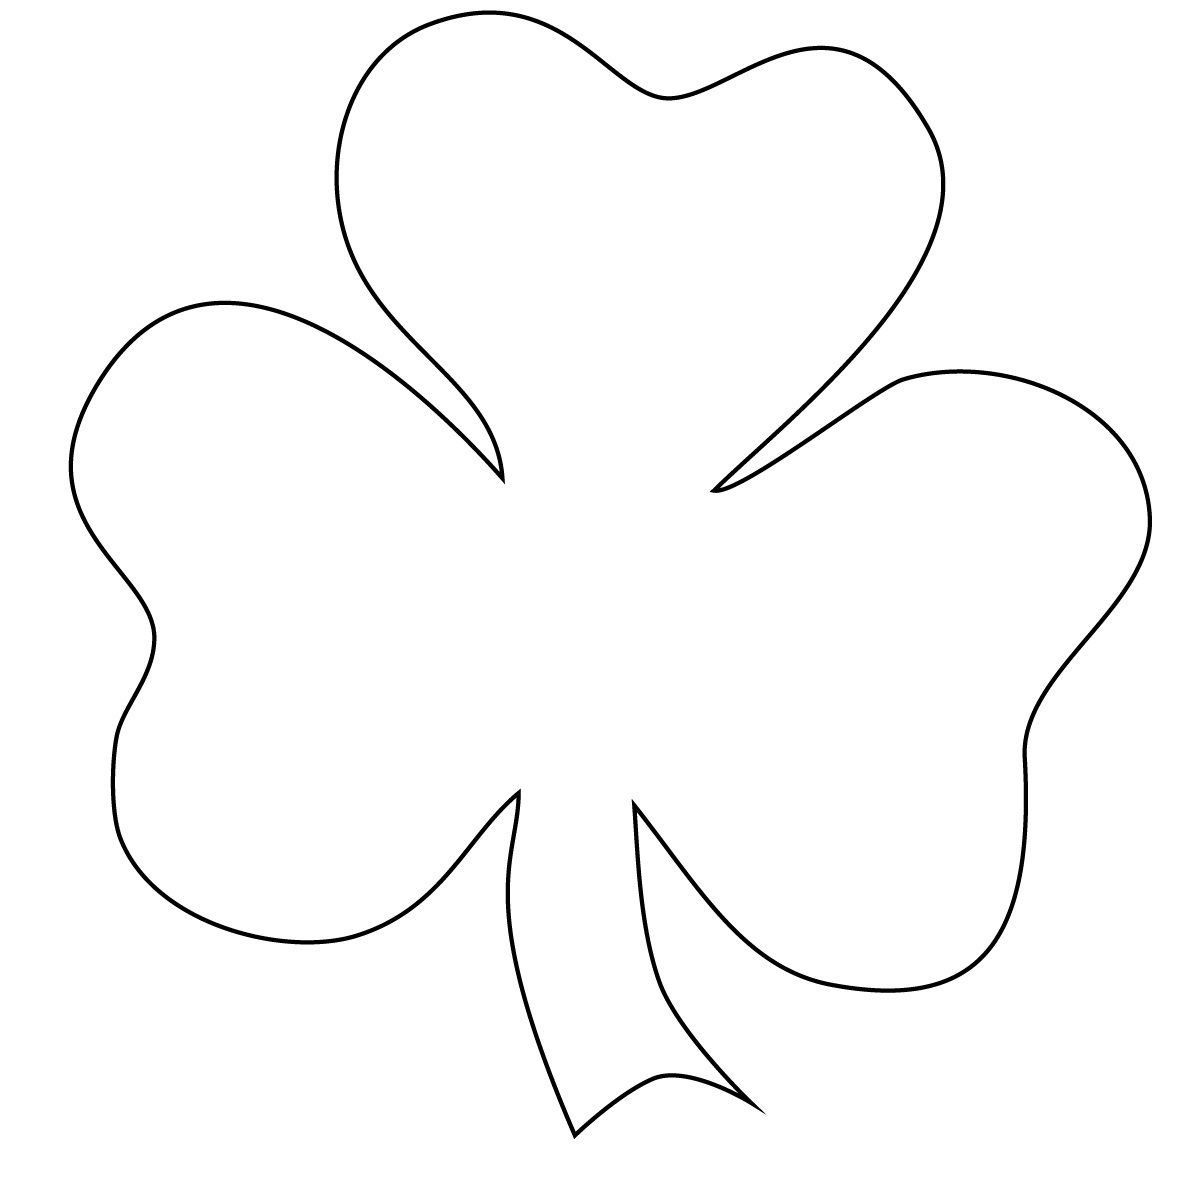 photo regarding Shamrock Coloring Pages Printable identified as Absolutely free Printable Shamrock Coloring Web pages For Small children St